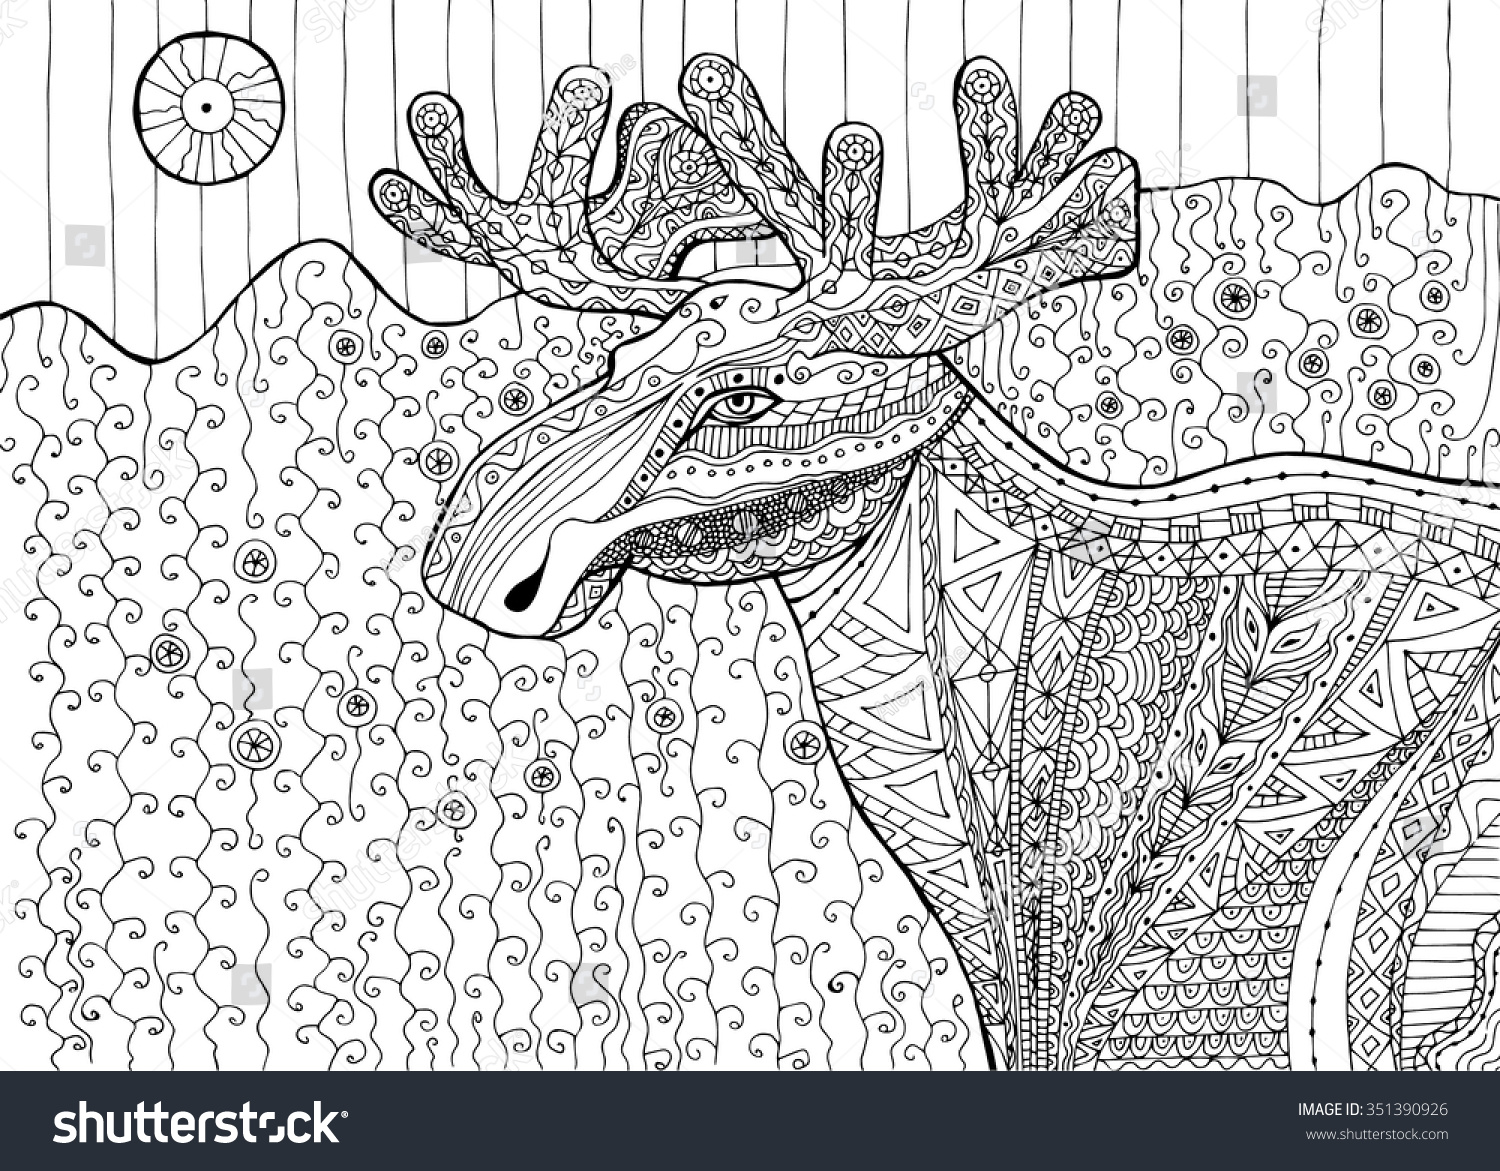 Black And White Drawing Elk Pattern Coloring Page